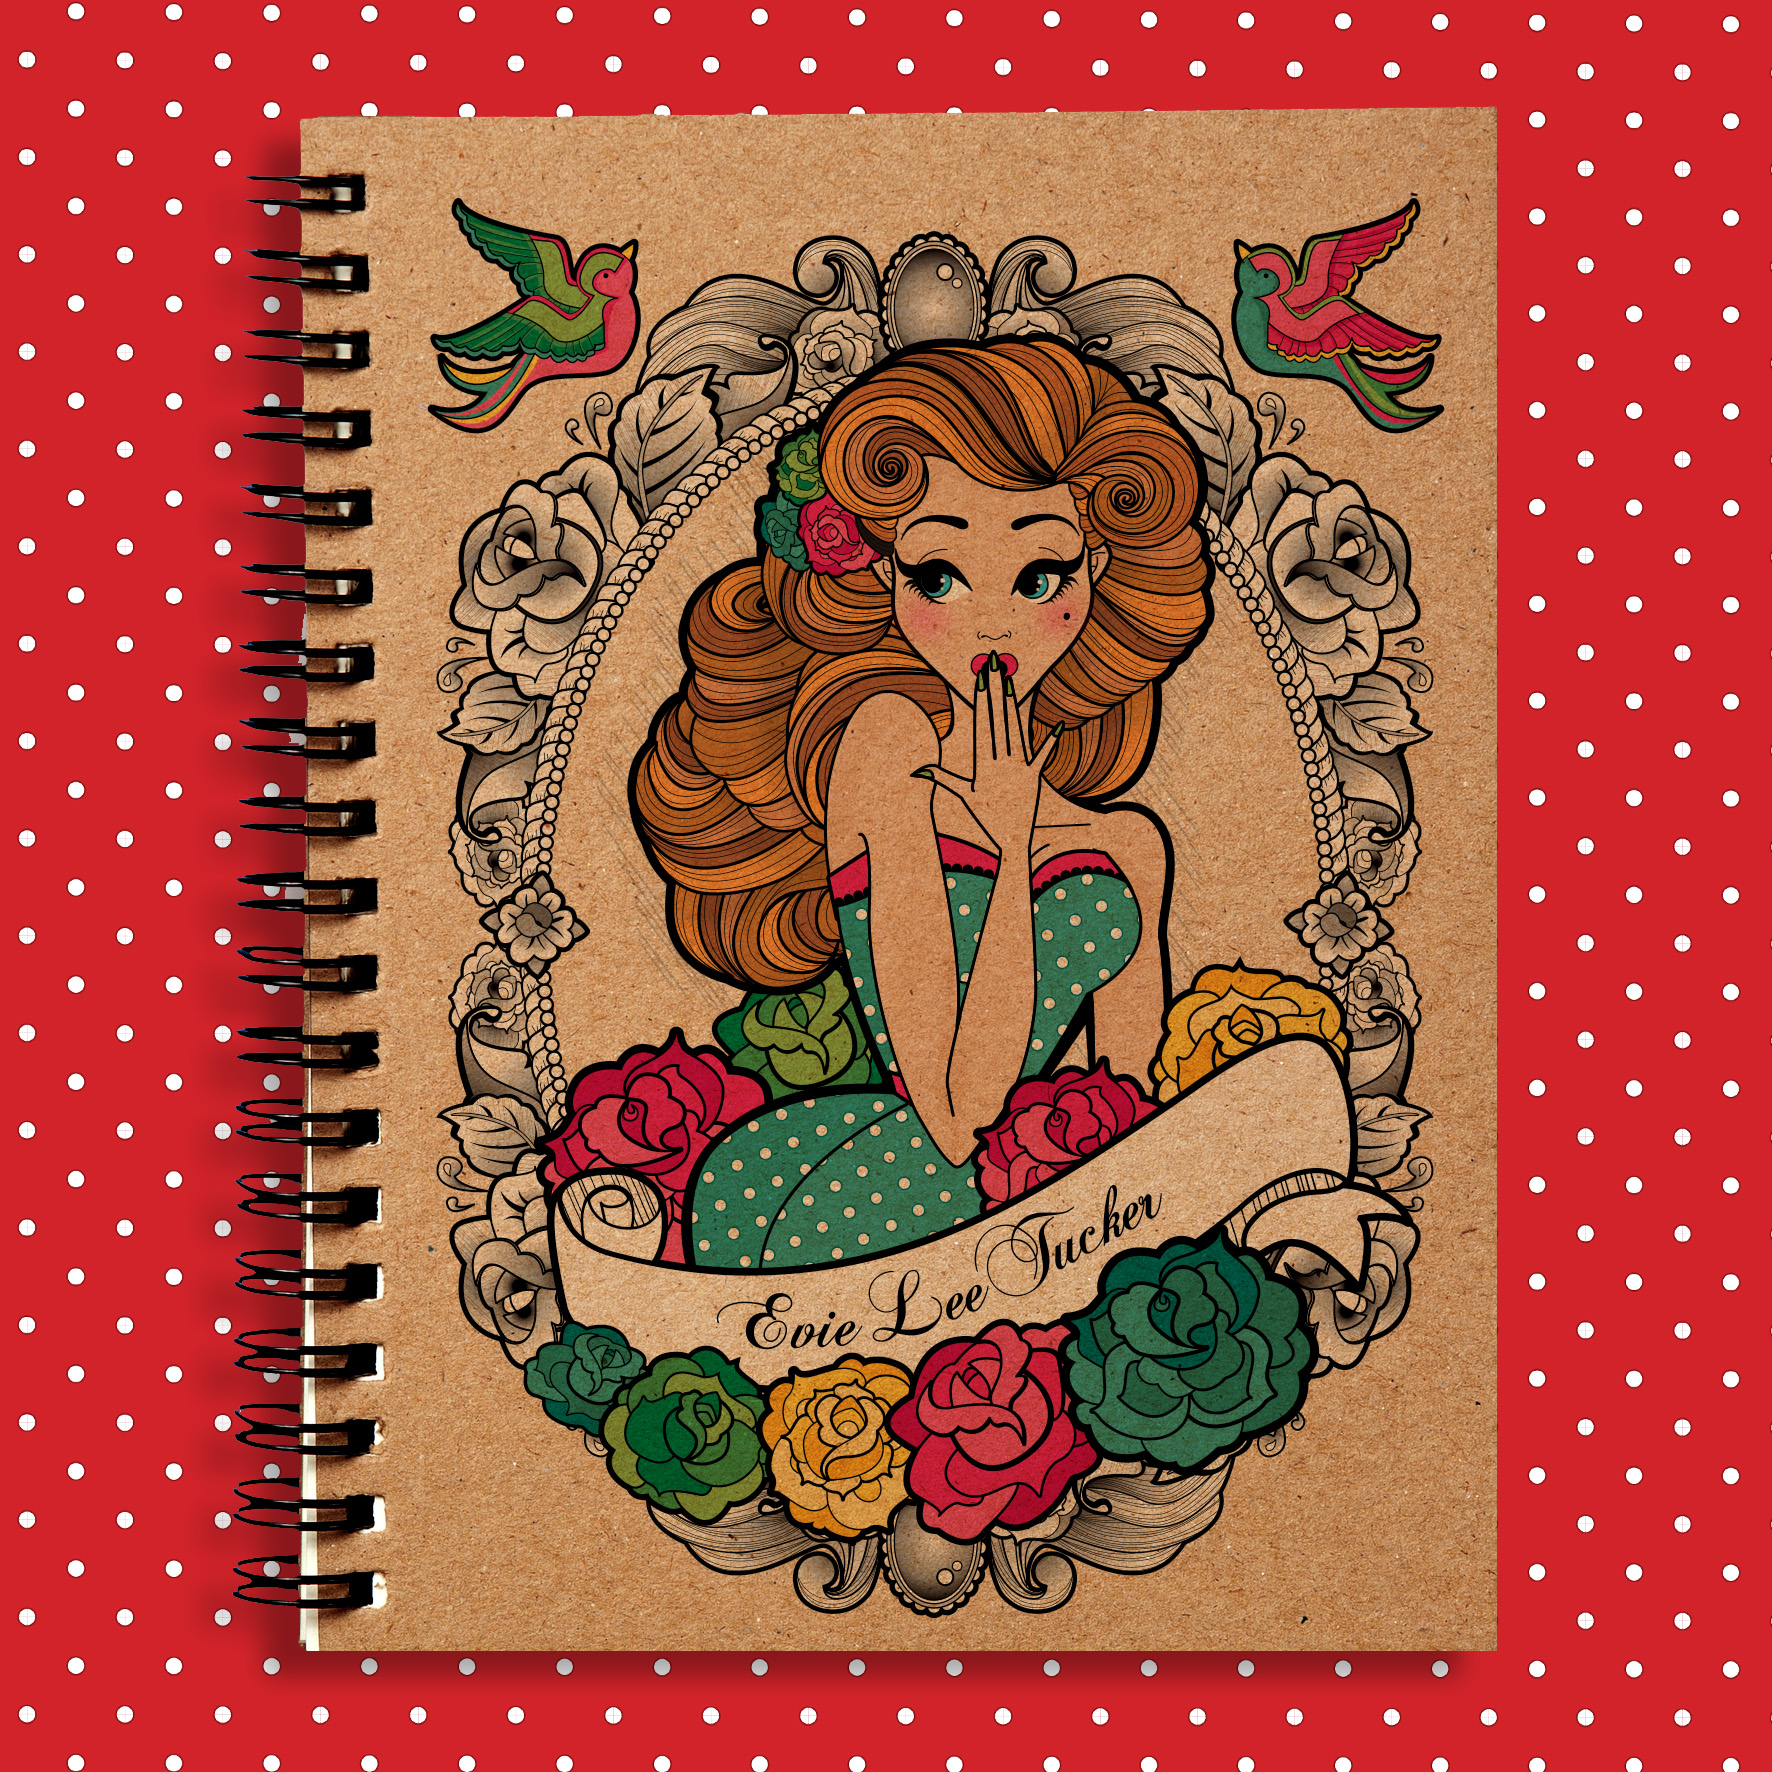 Evie Lee's Notebook